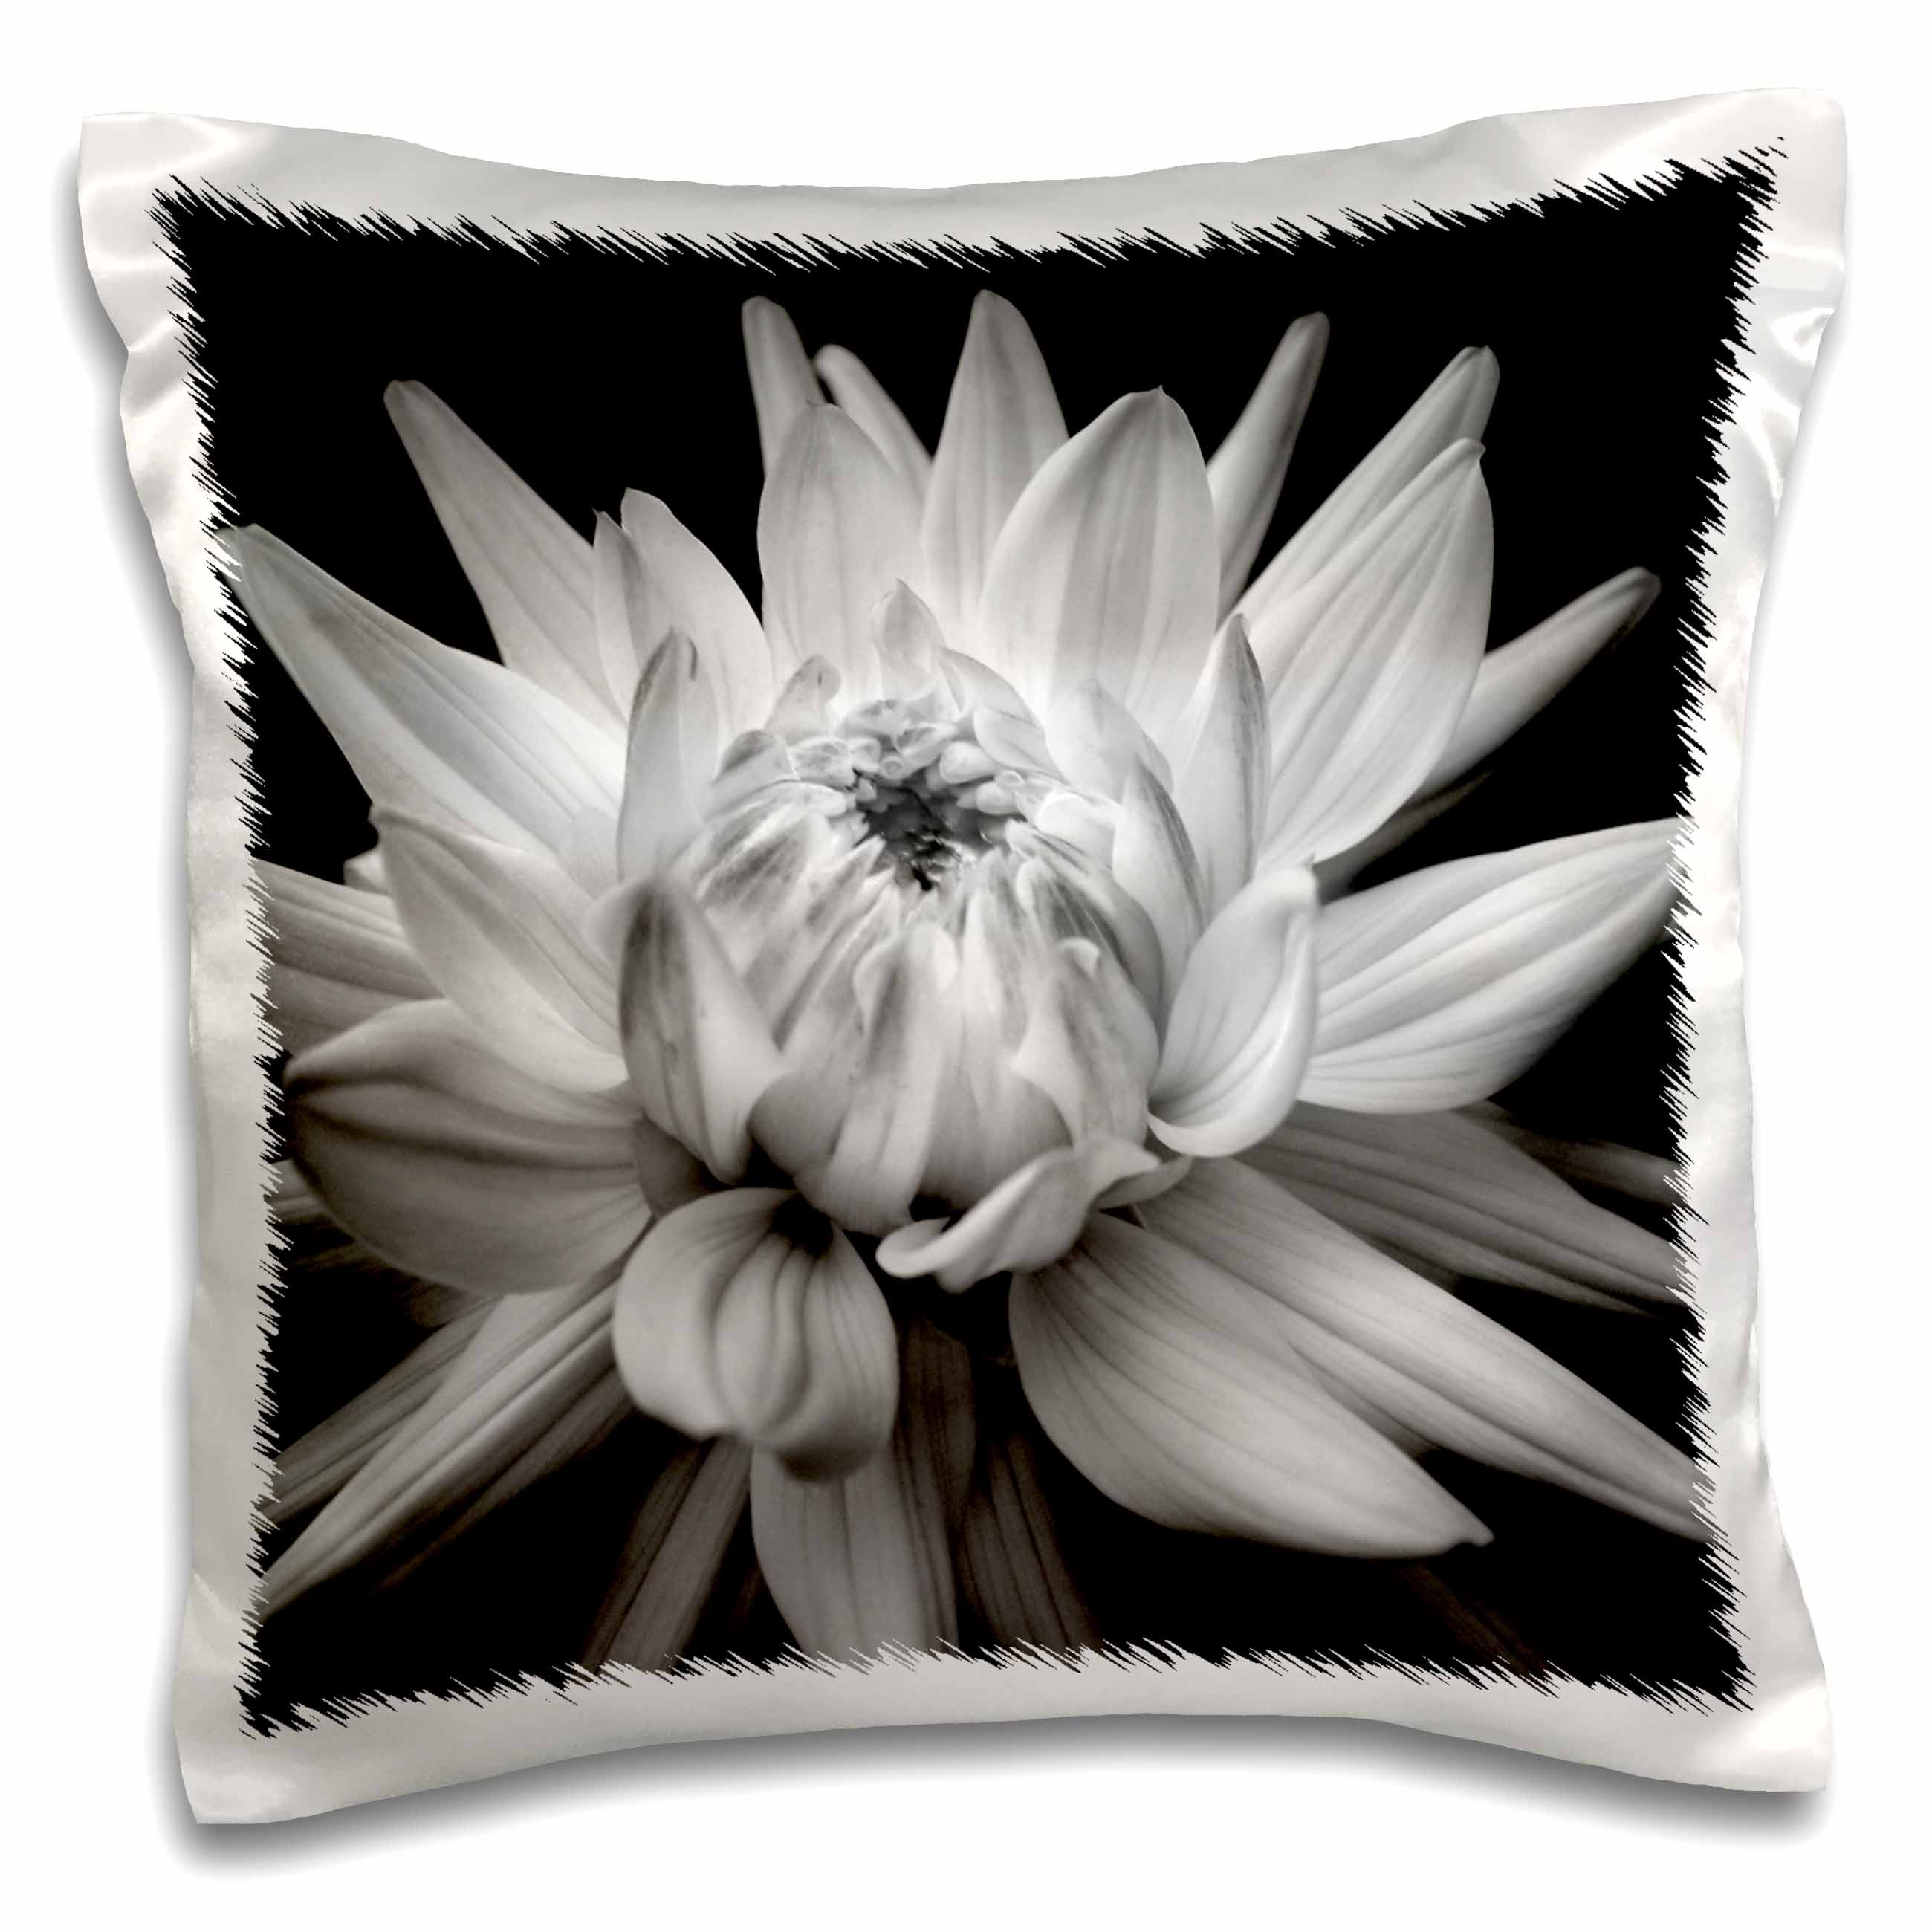 3dRose Monochrome Dahlia Corona Flower, Pillow Case, 16 by 16-inch